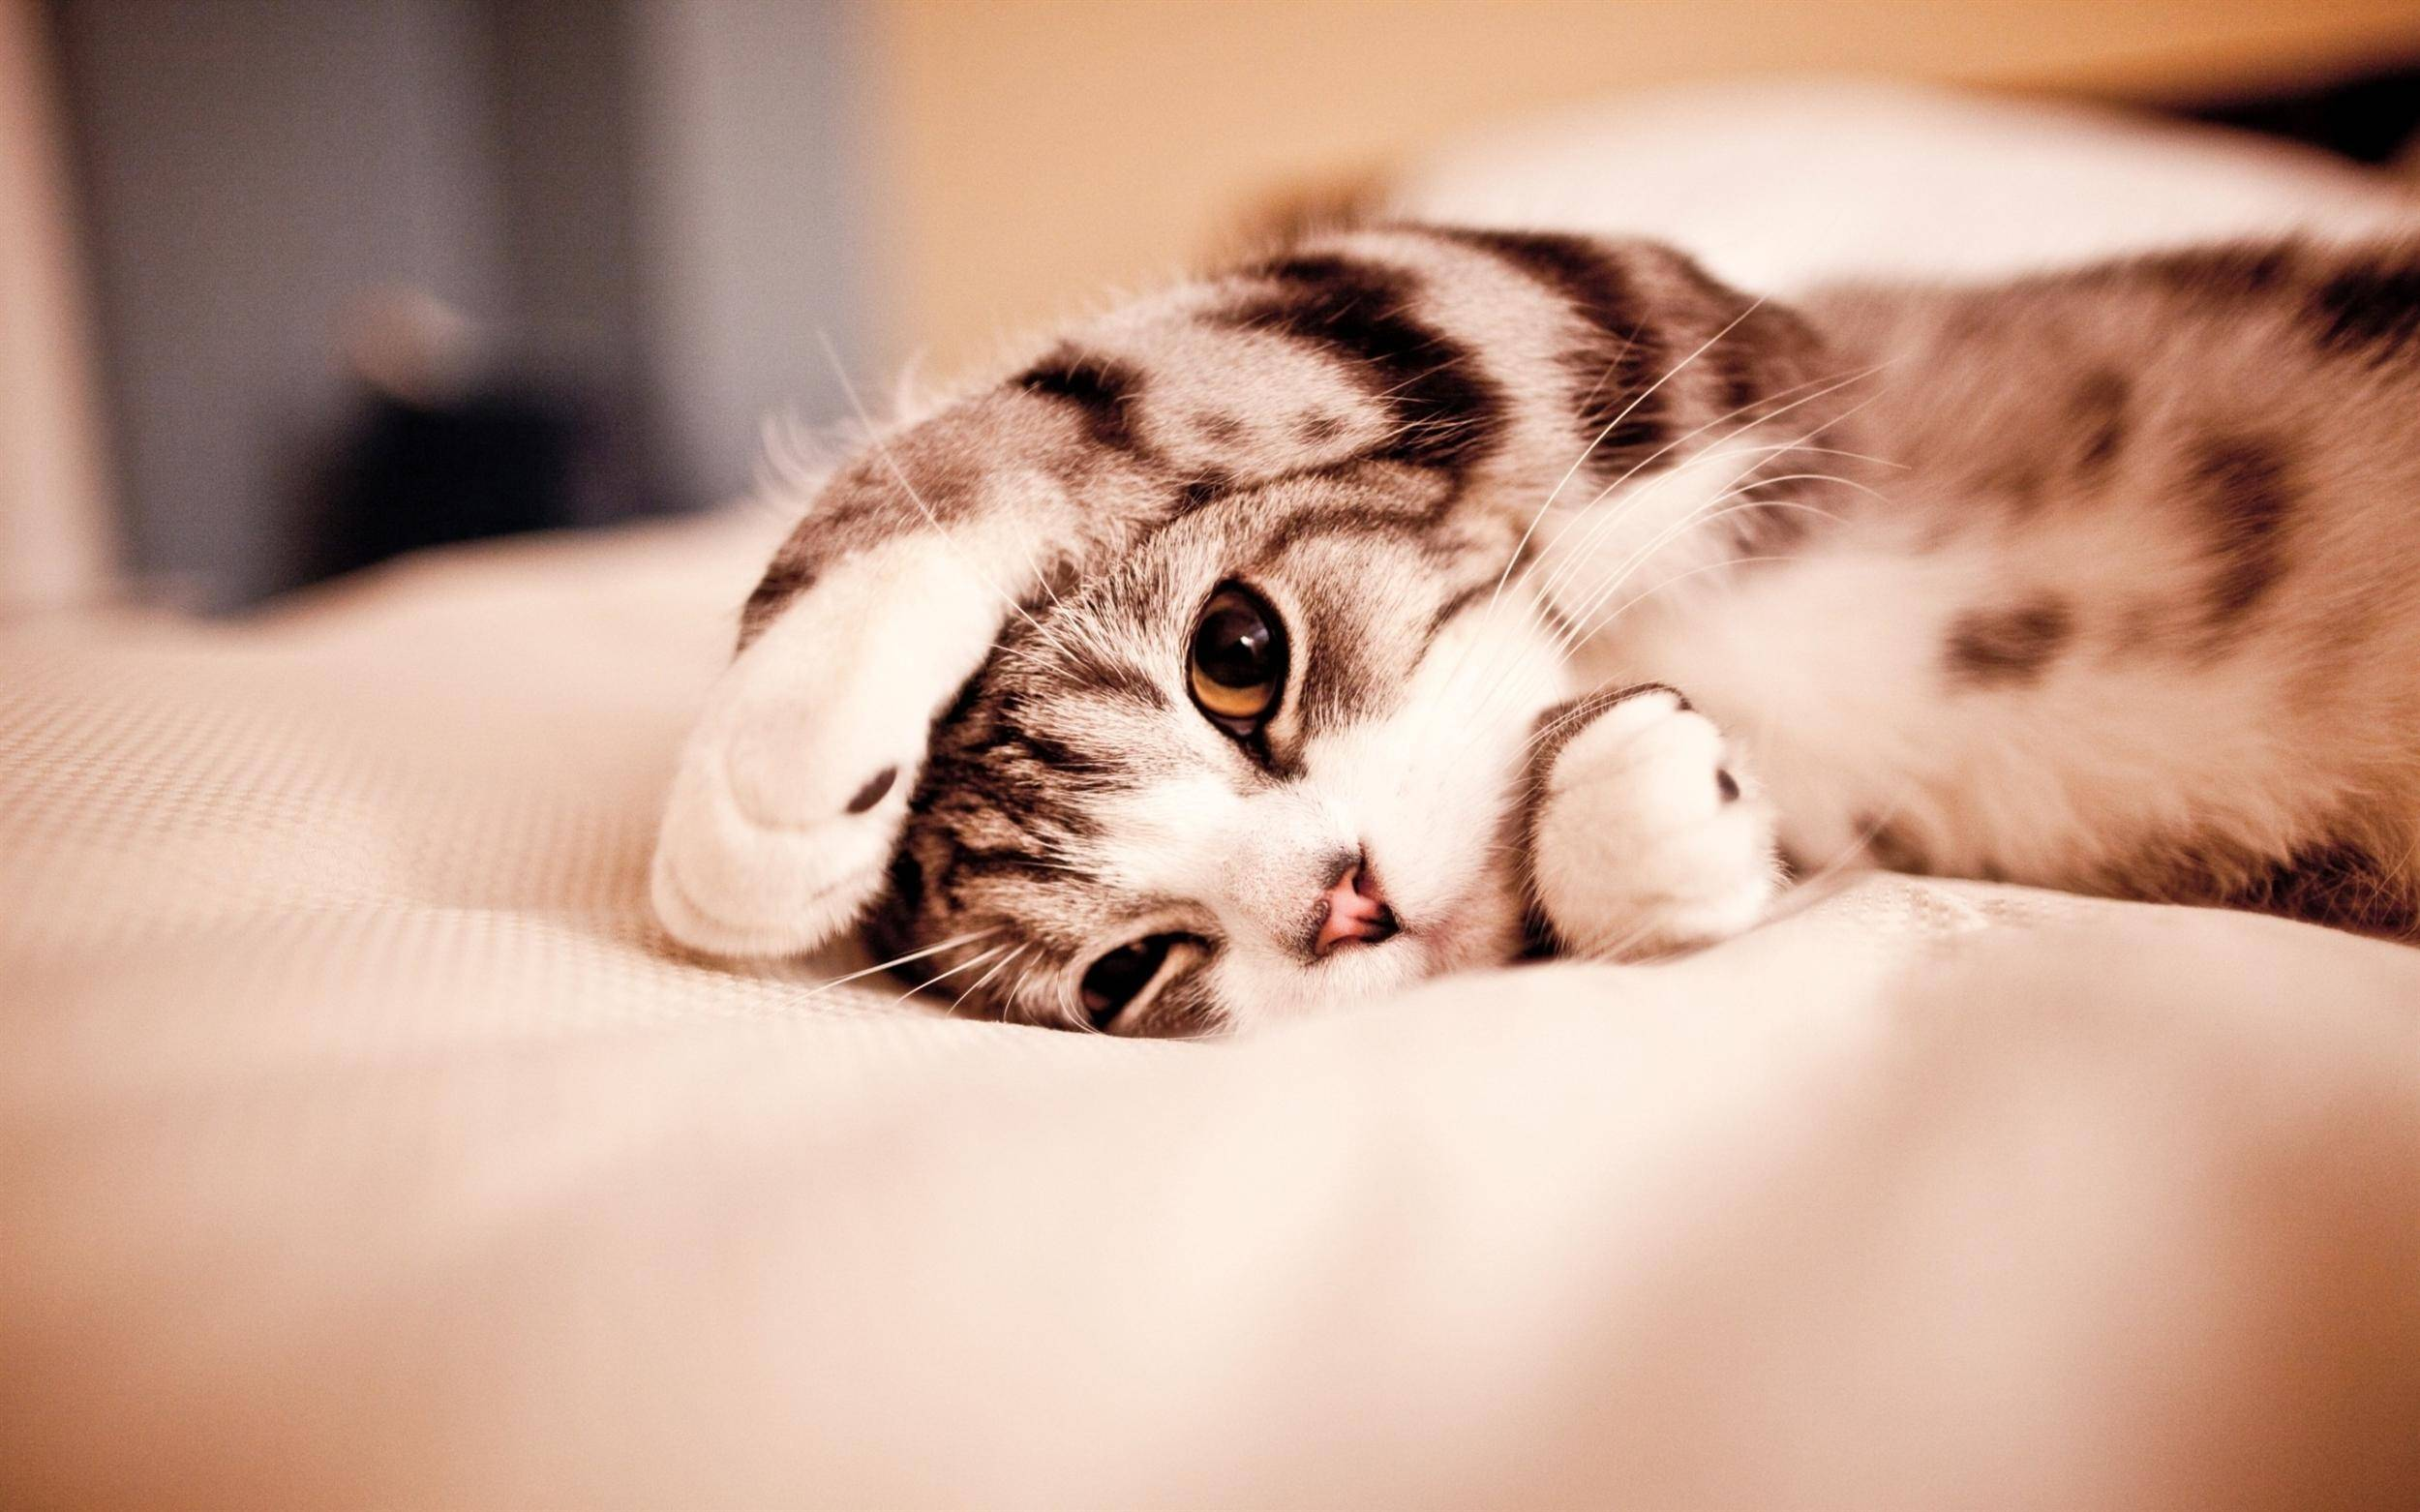 Adorable Cat Photos Hd Cute Cats Pictures Free Art